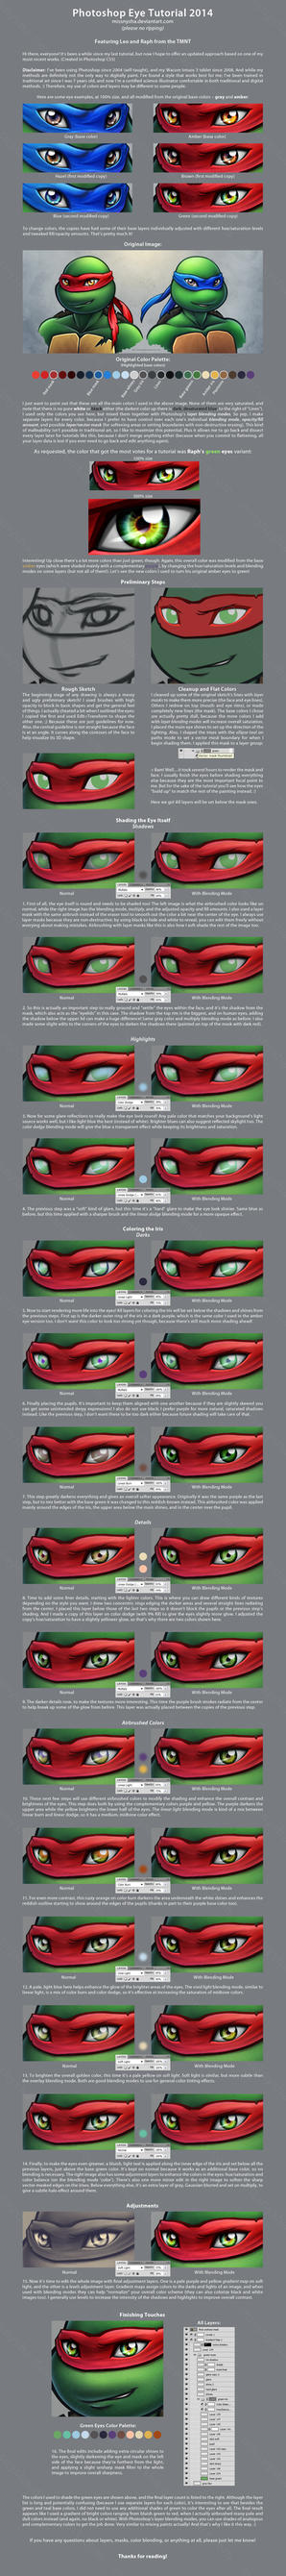 Photoshop Eye Tutorial 2014 by MissNysha